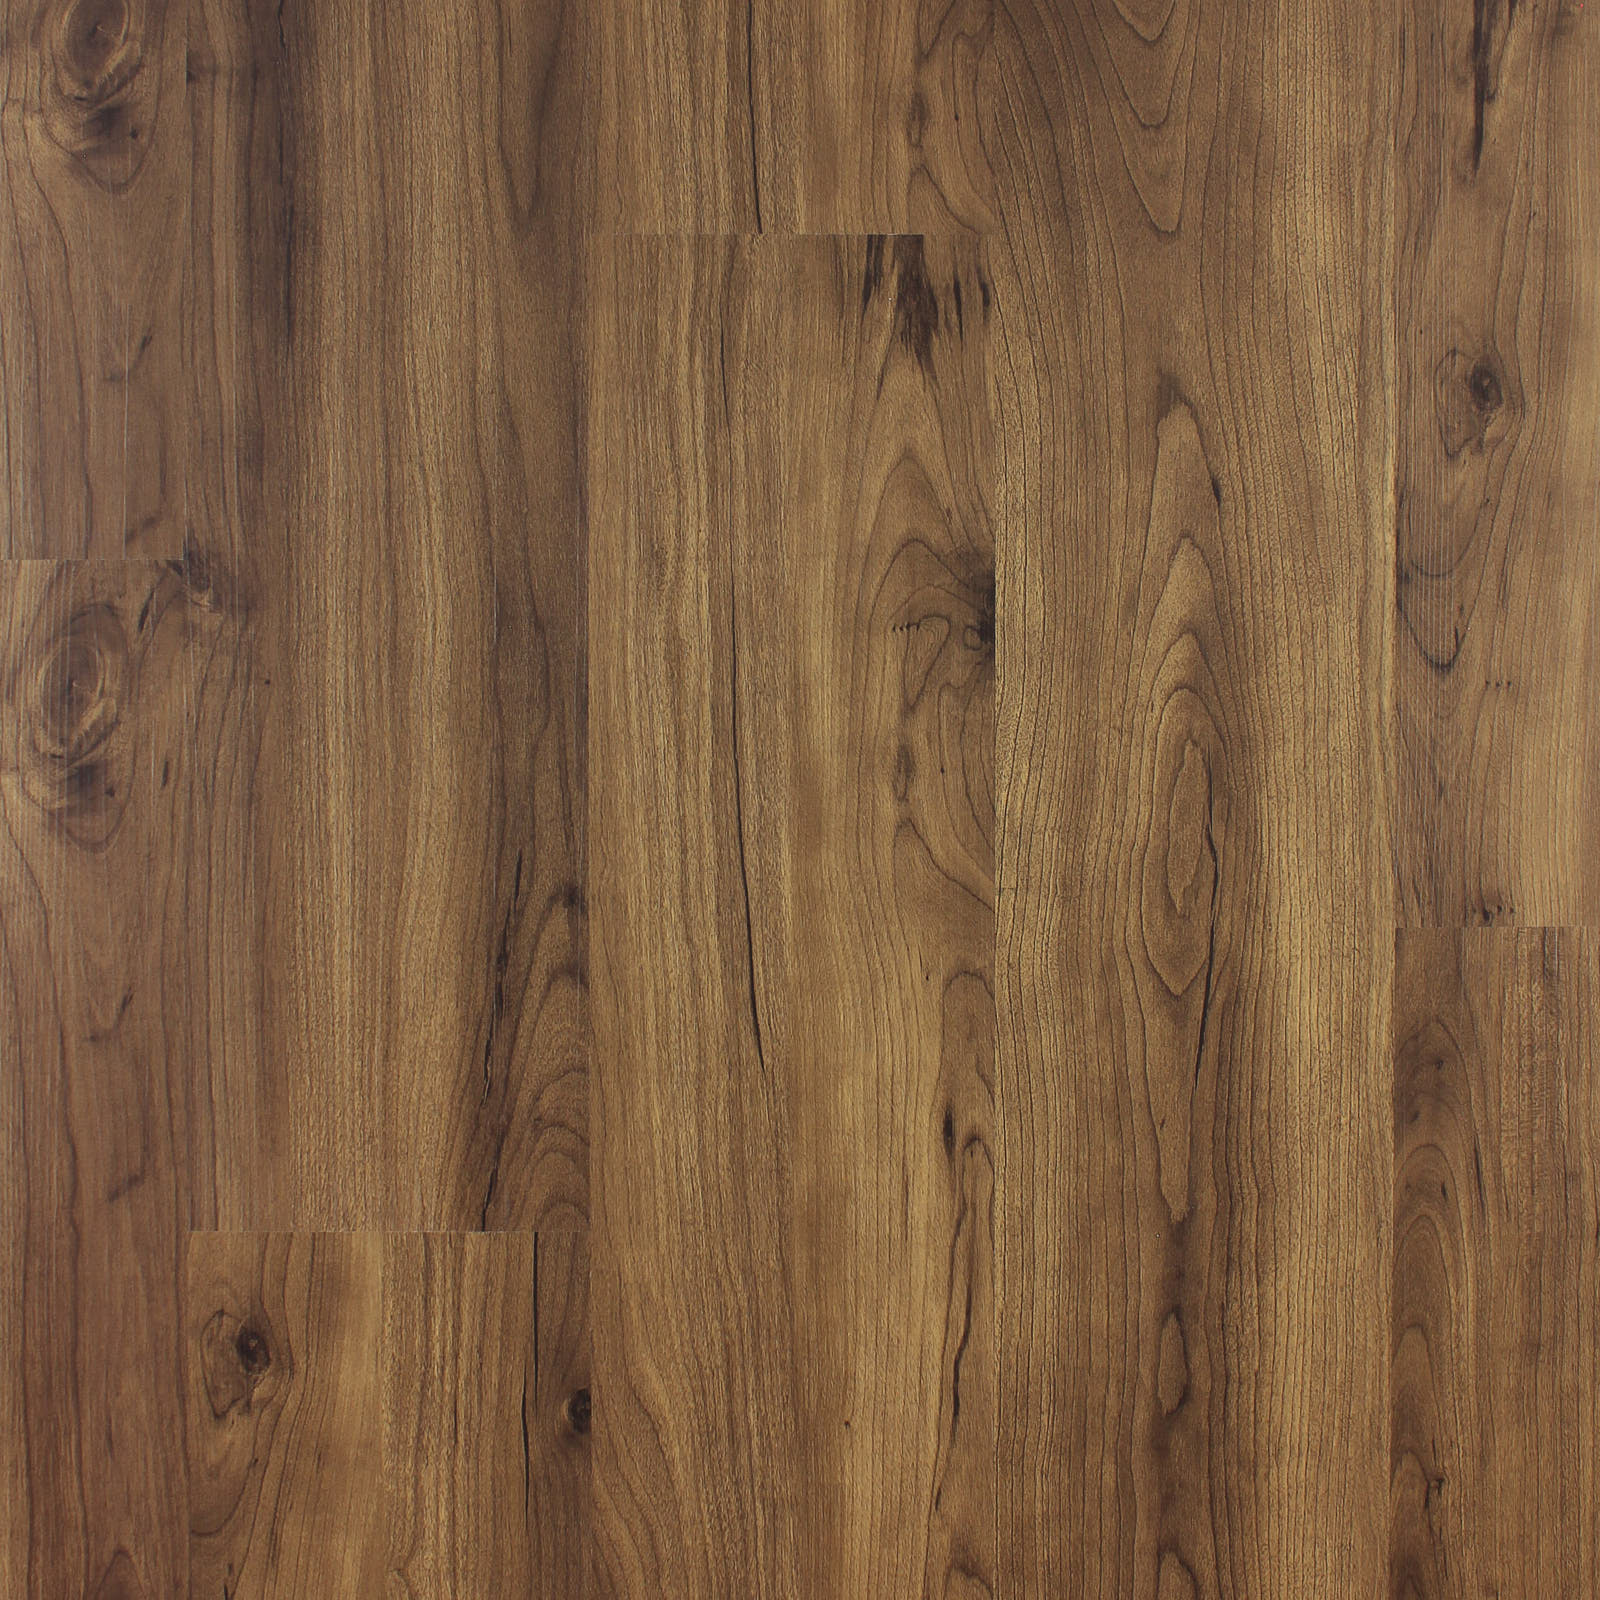 AquaLock Makai Engineered Vinyl Plank Flooring